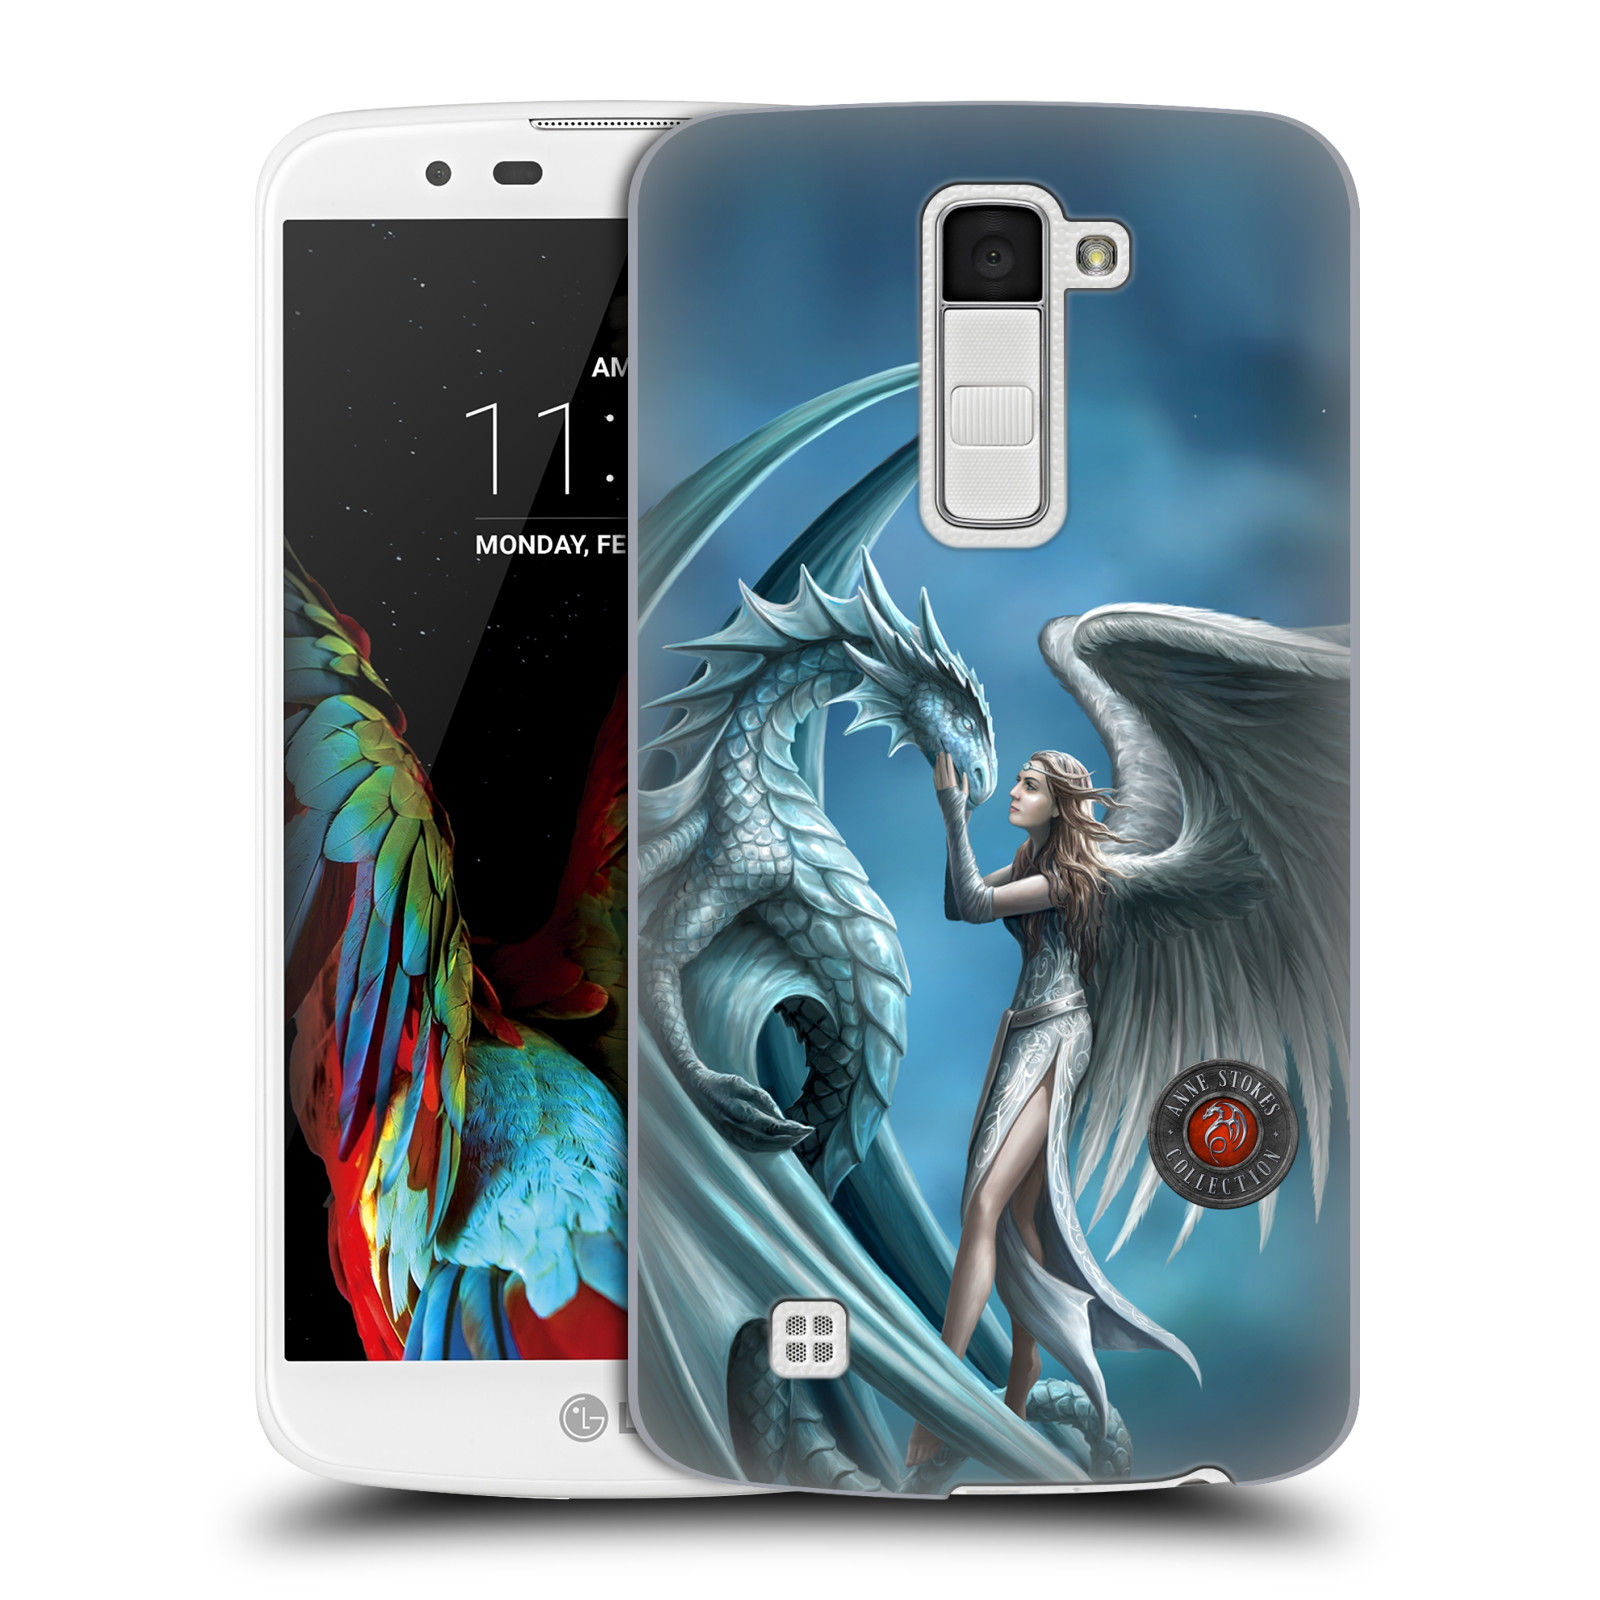 OFFICIAL ANNE STOKES DRAGON FRIENDSHIP HARD BACK CASE FOR LG PHONES 3